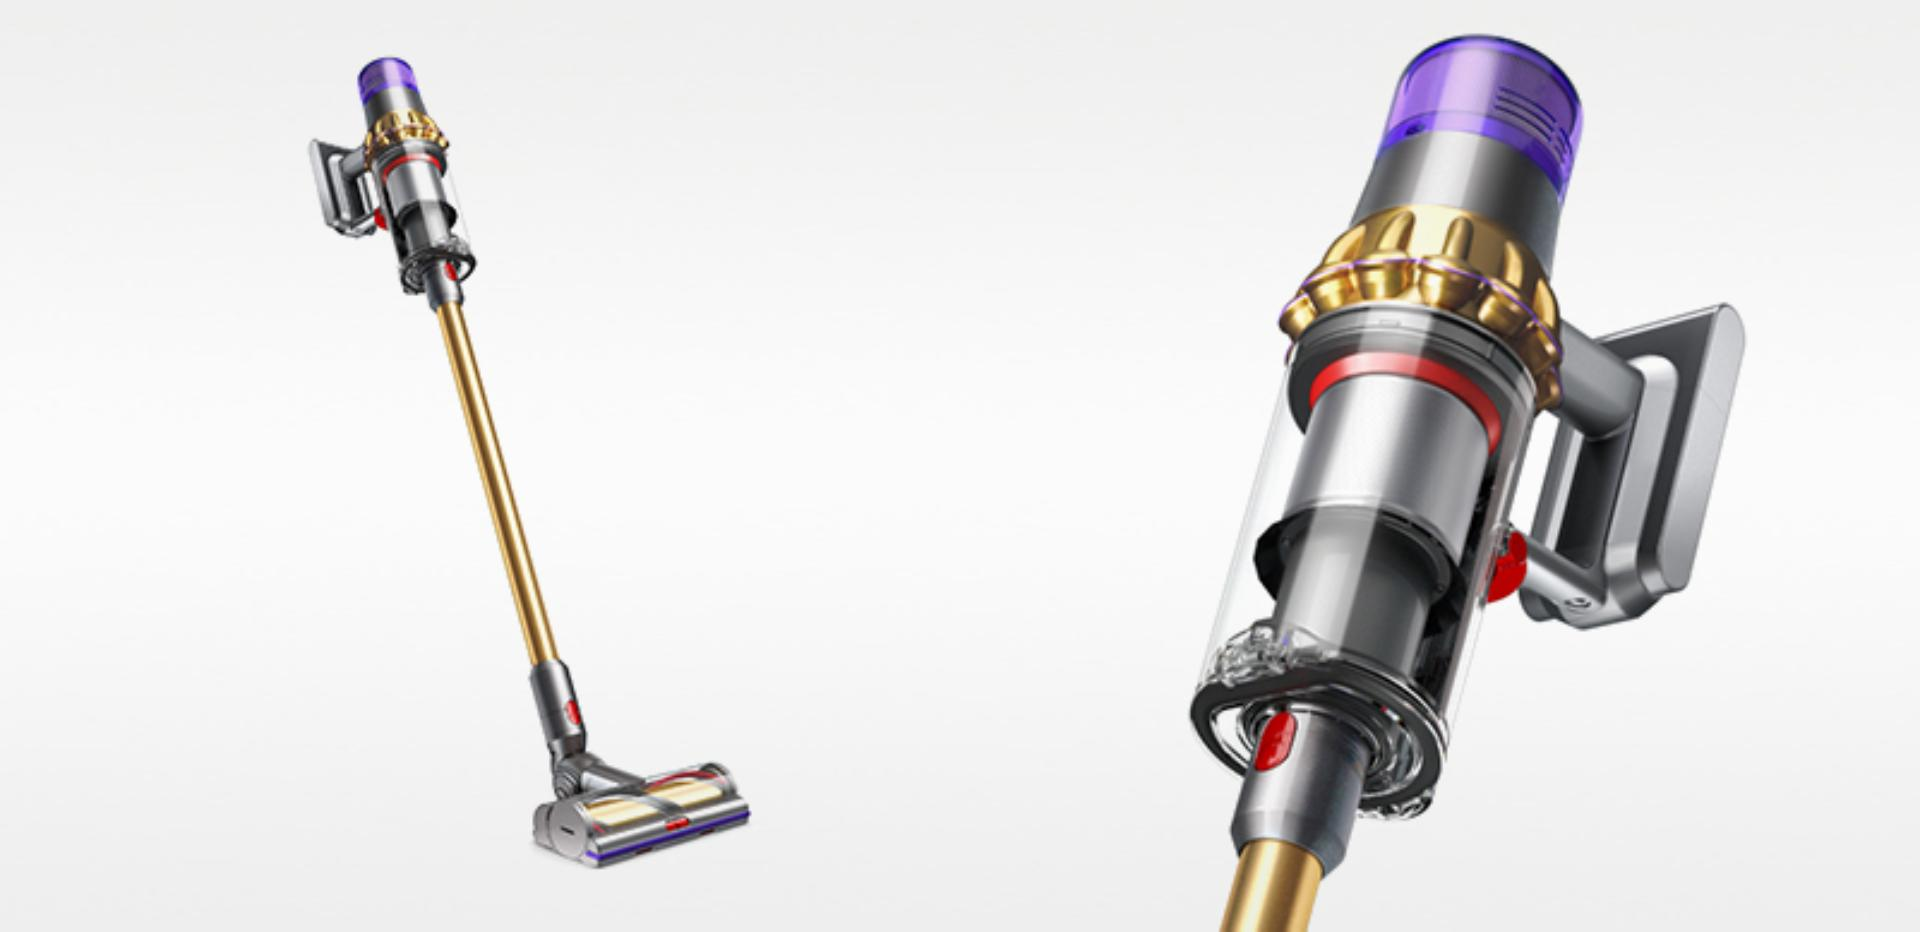 Image showing Dyson V11 Absolute Extra Gold cordless vacuum